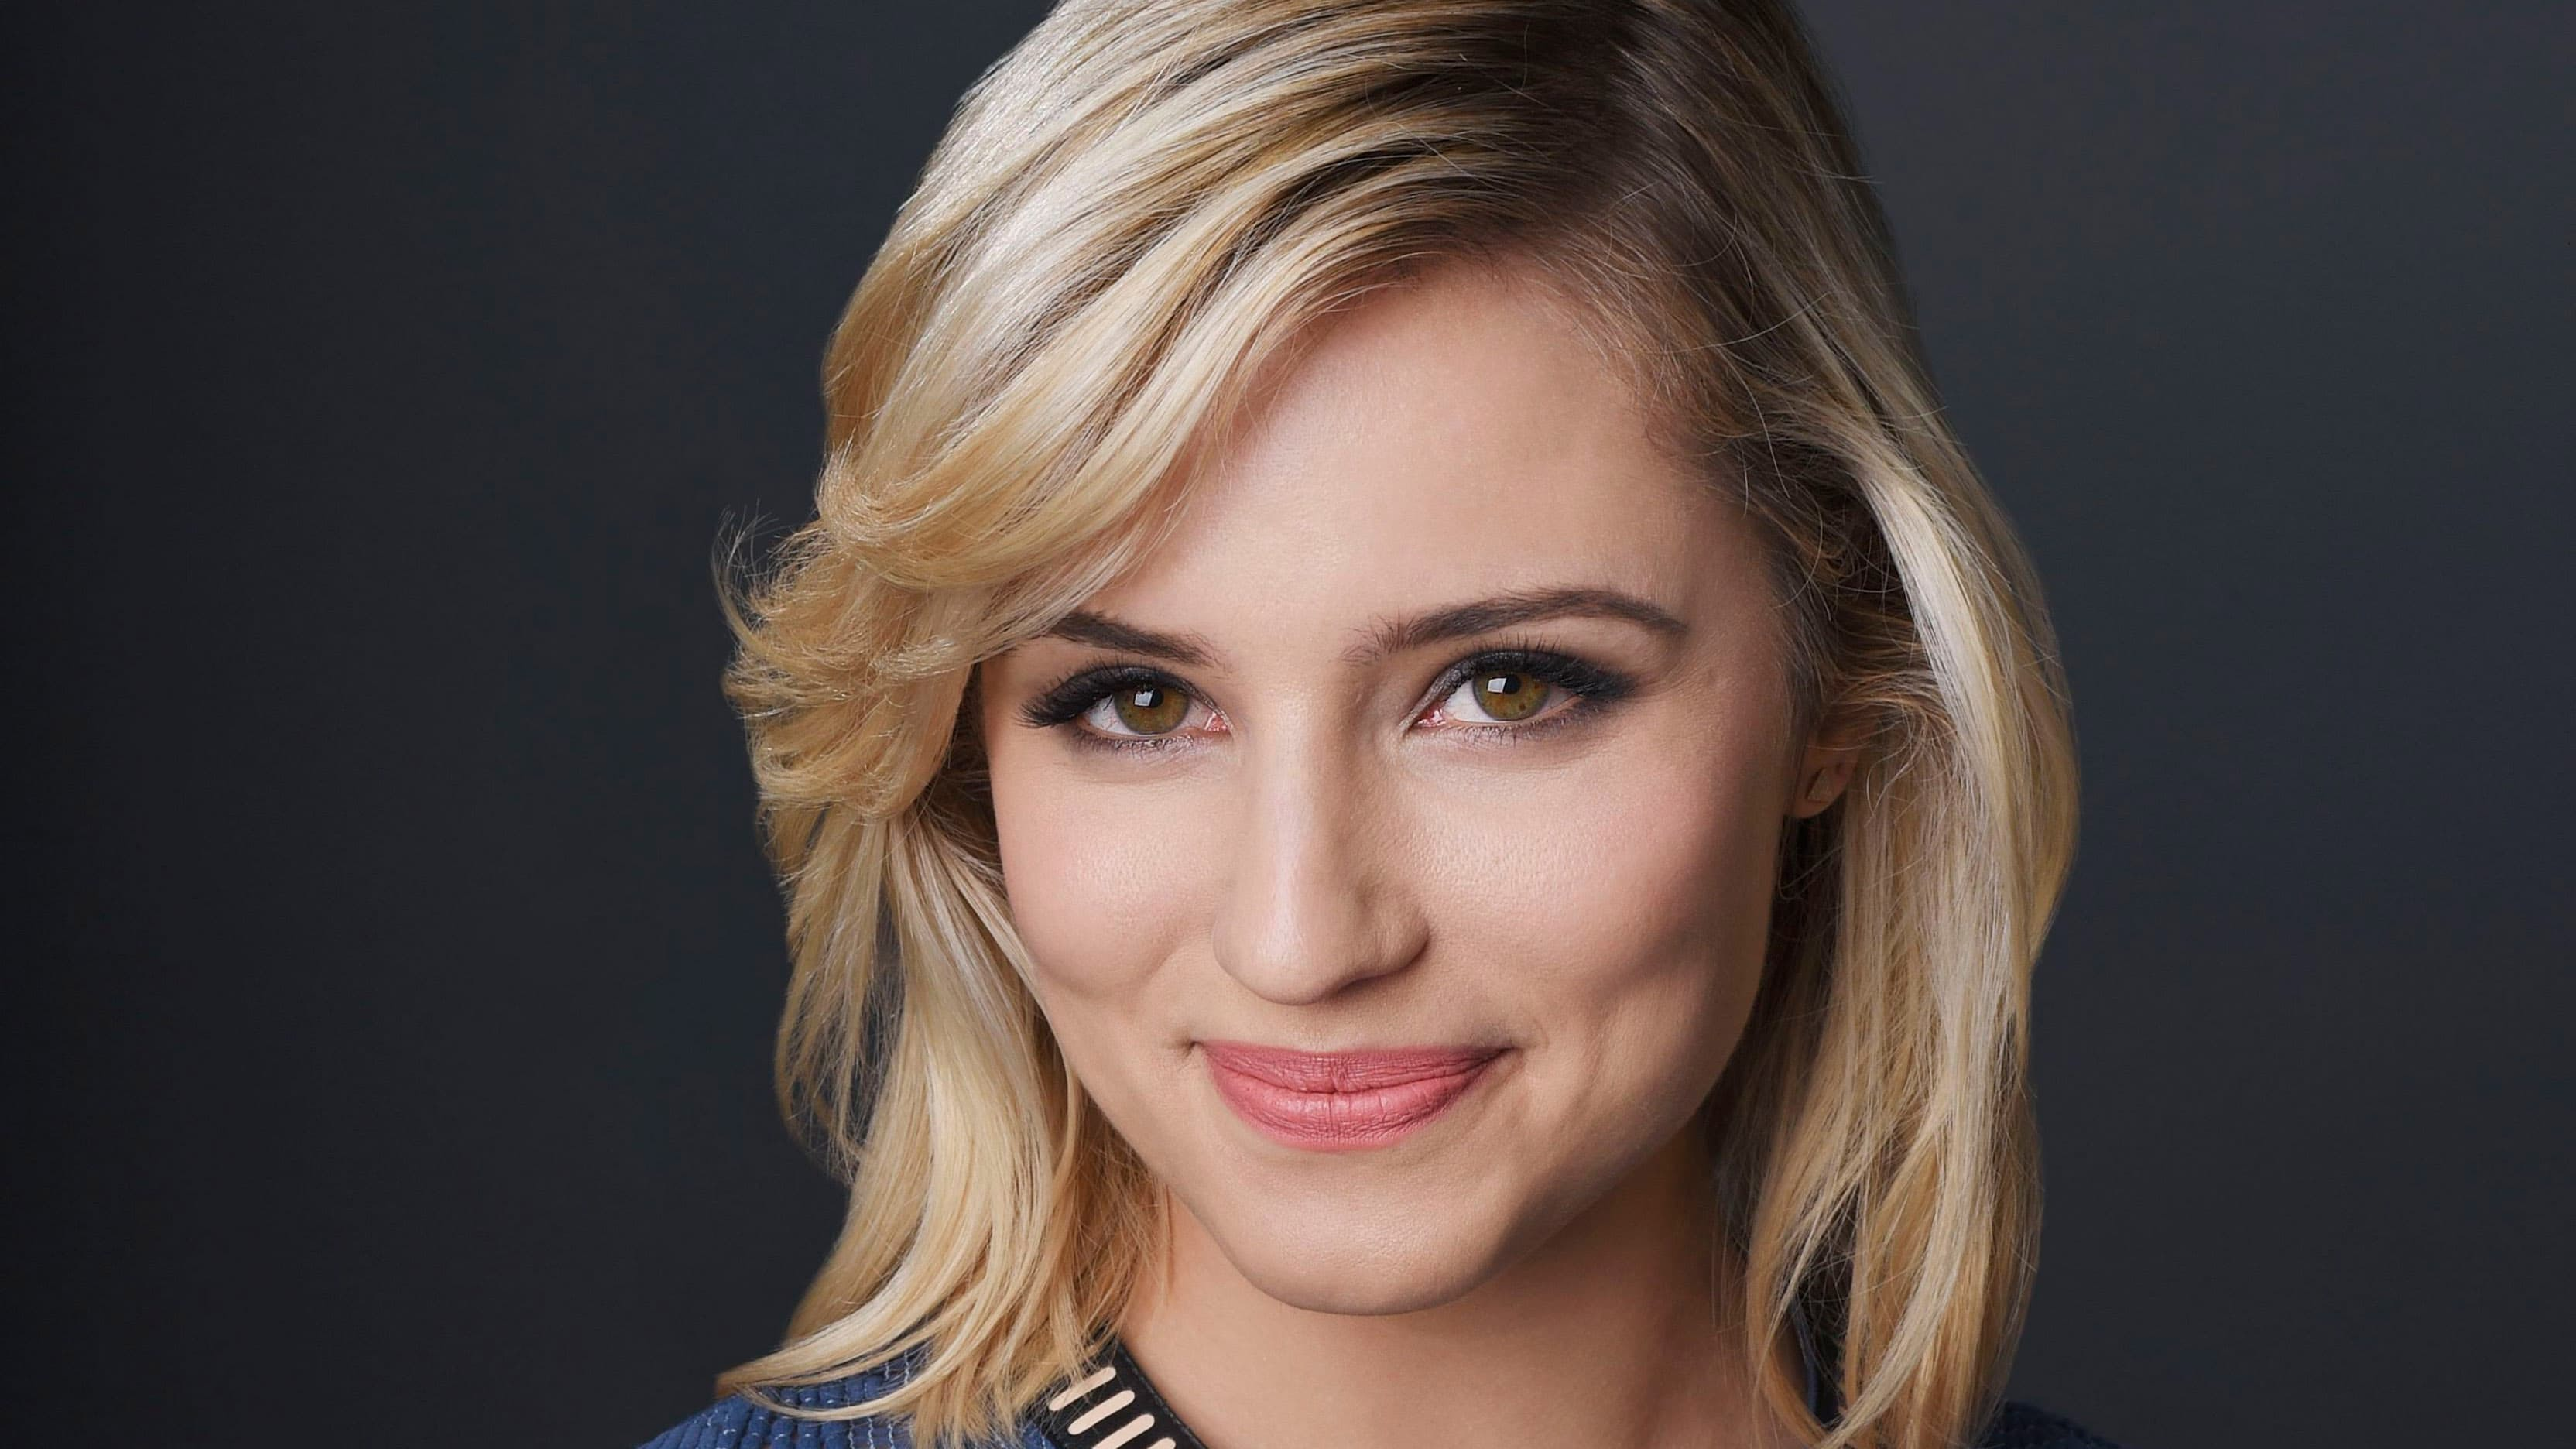 The Best Flowers Dianna Agron Wallpapers Images Photos Pictures Backgrounds